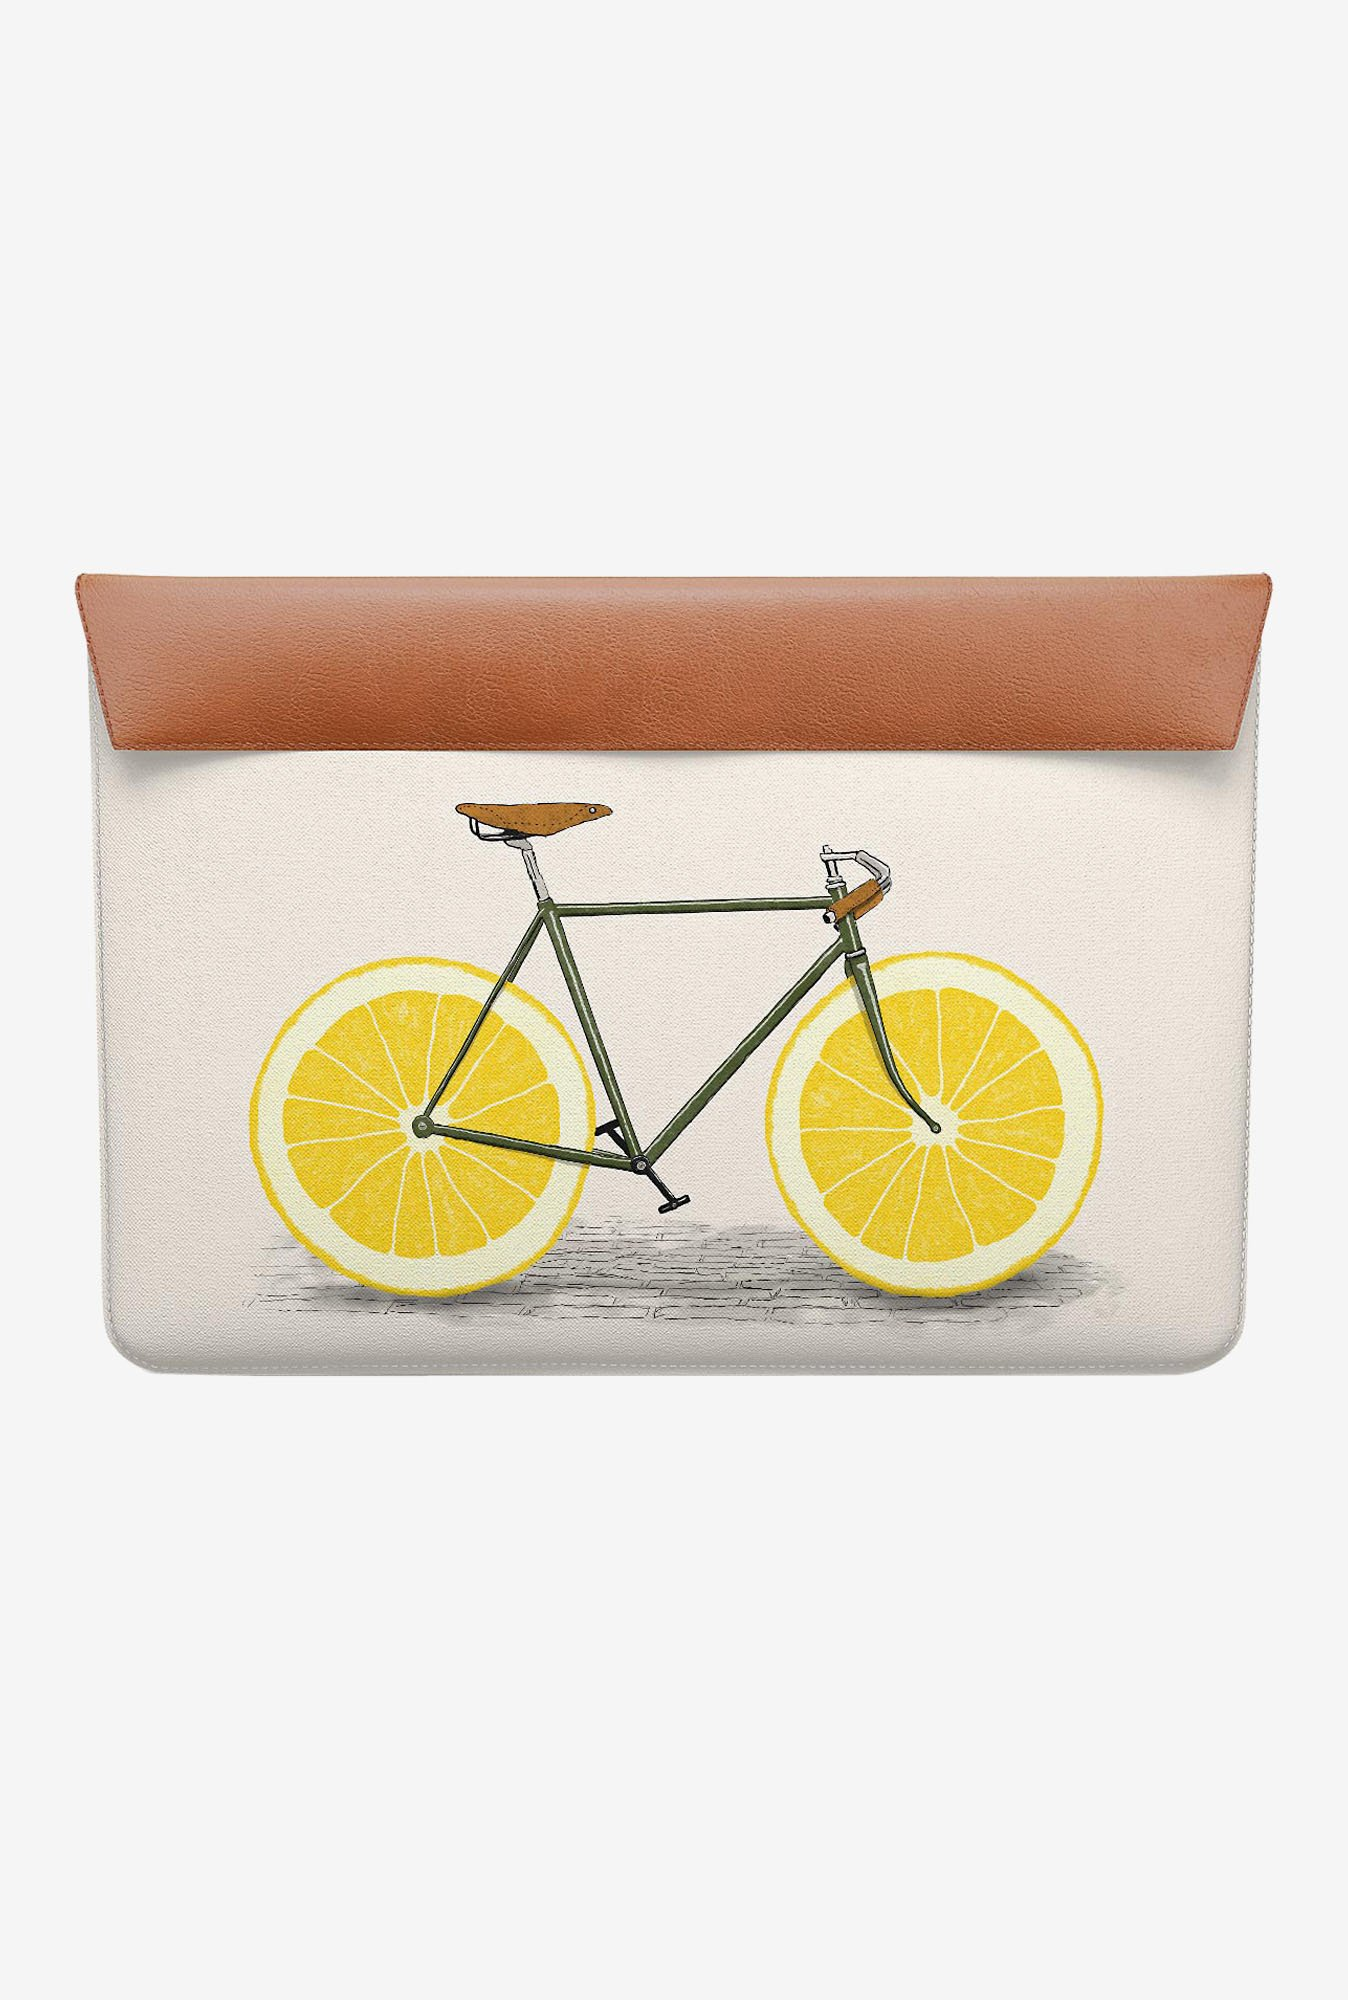 DailyObjects Yellow Wheels MacBook 12 Envelope Sleeve